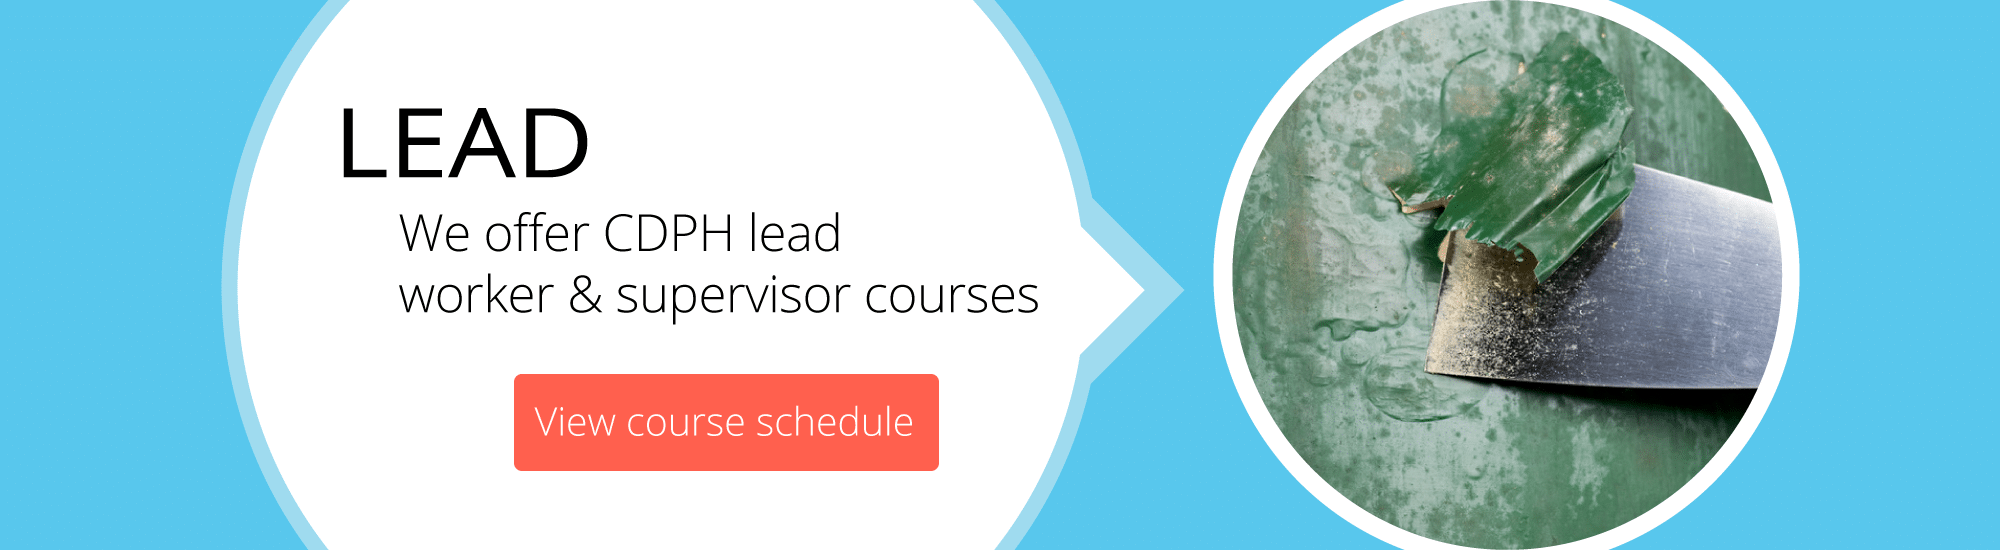 We offer CDPH lead worker & supervisor courses